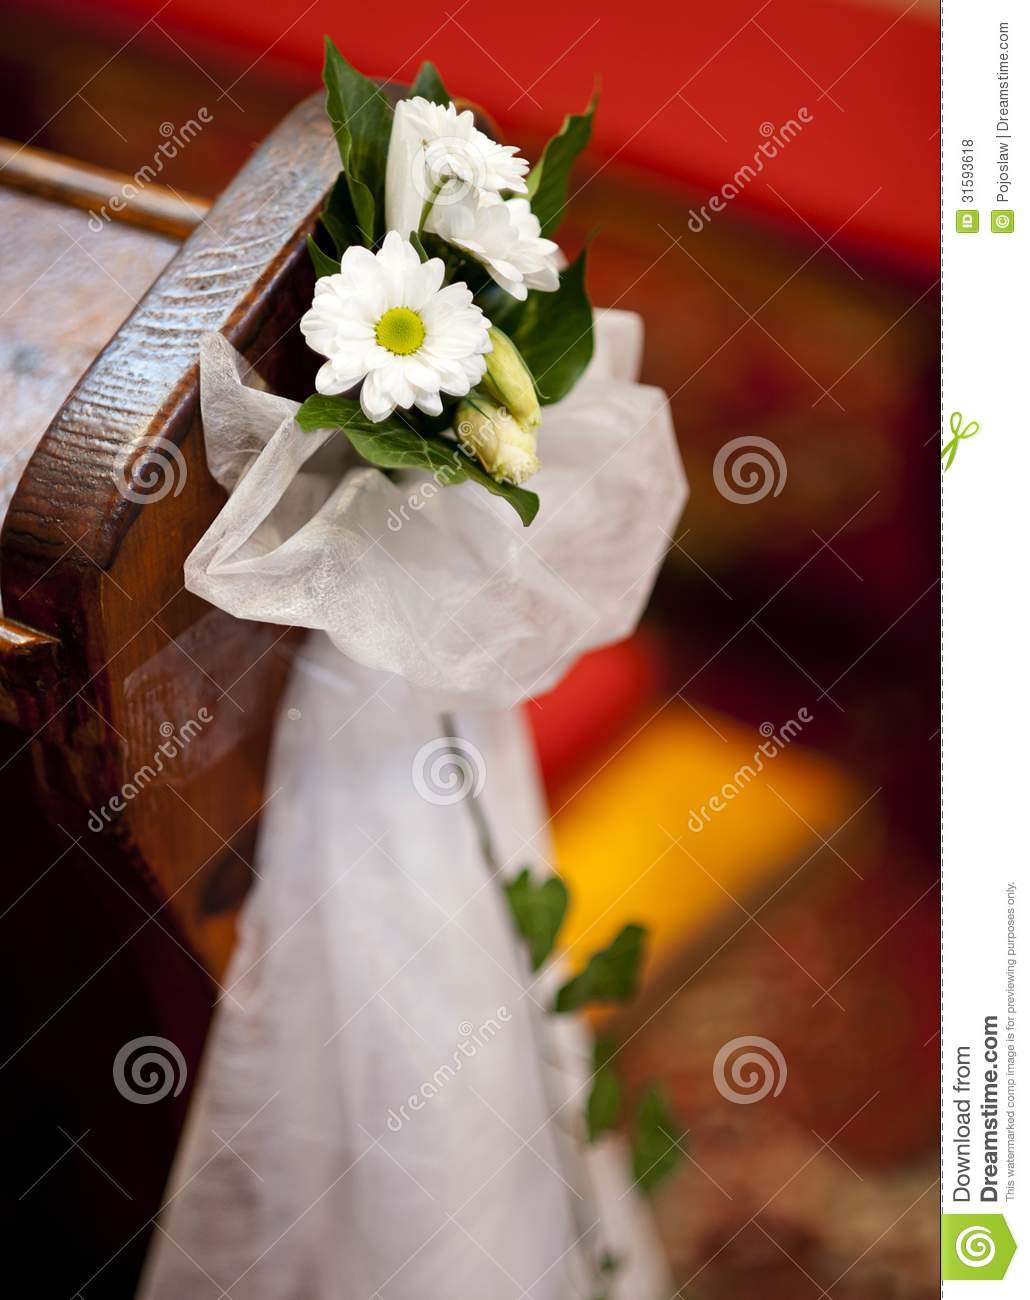 Wedding table decoration royalty free stock photos image 31593618